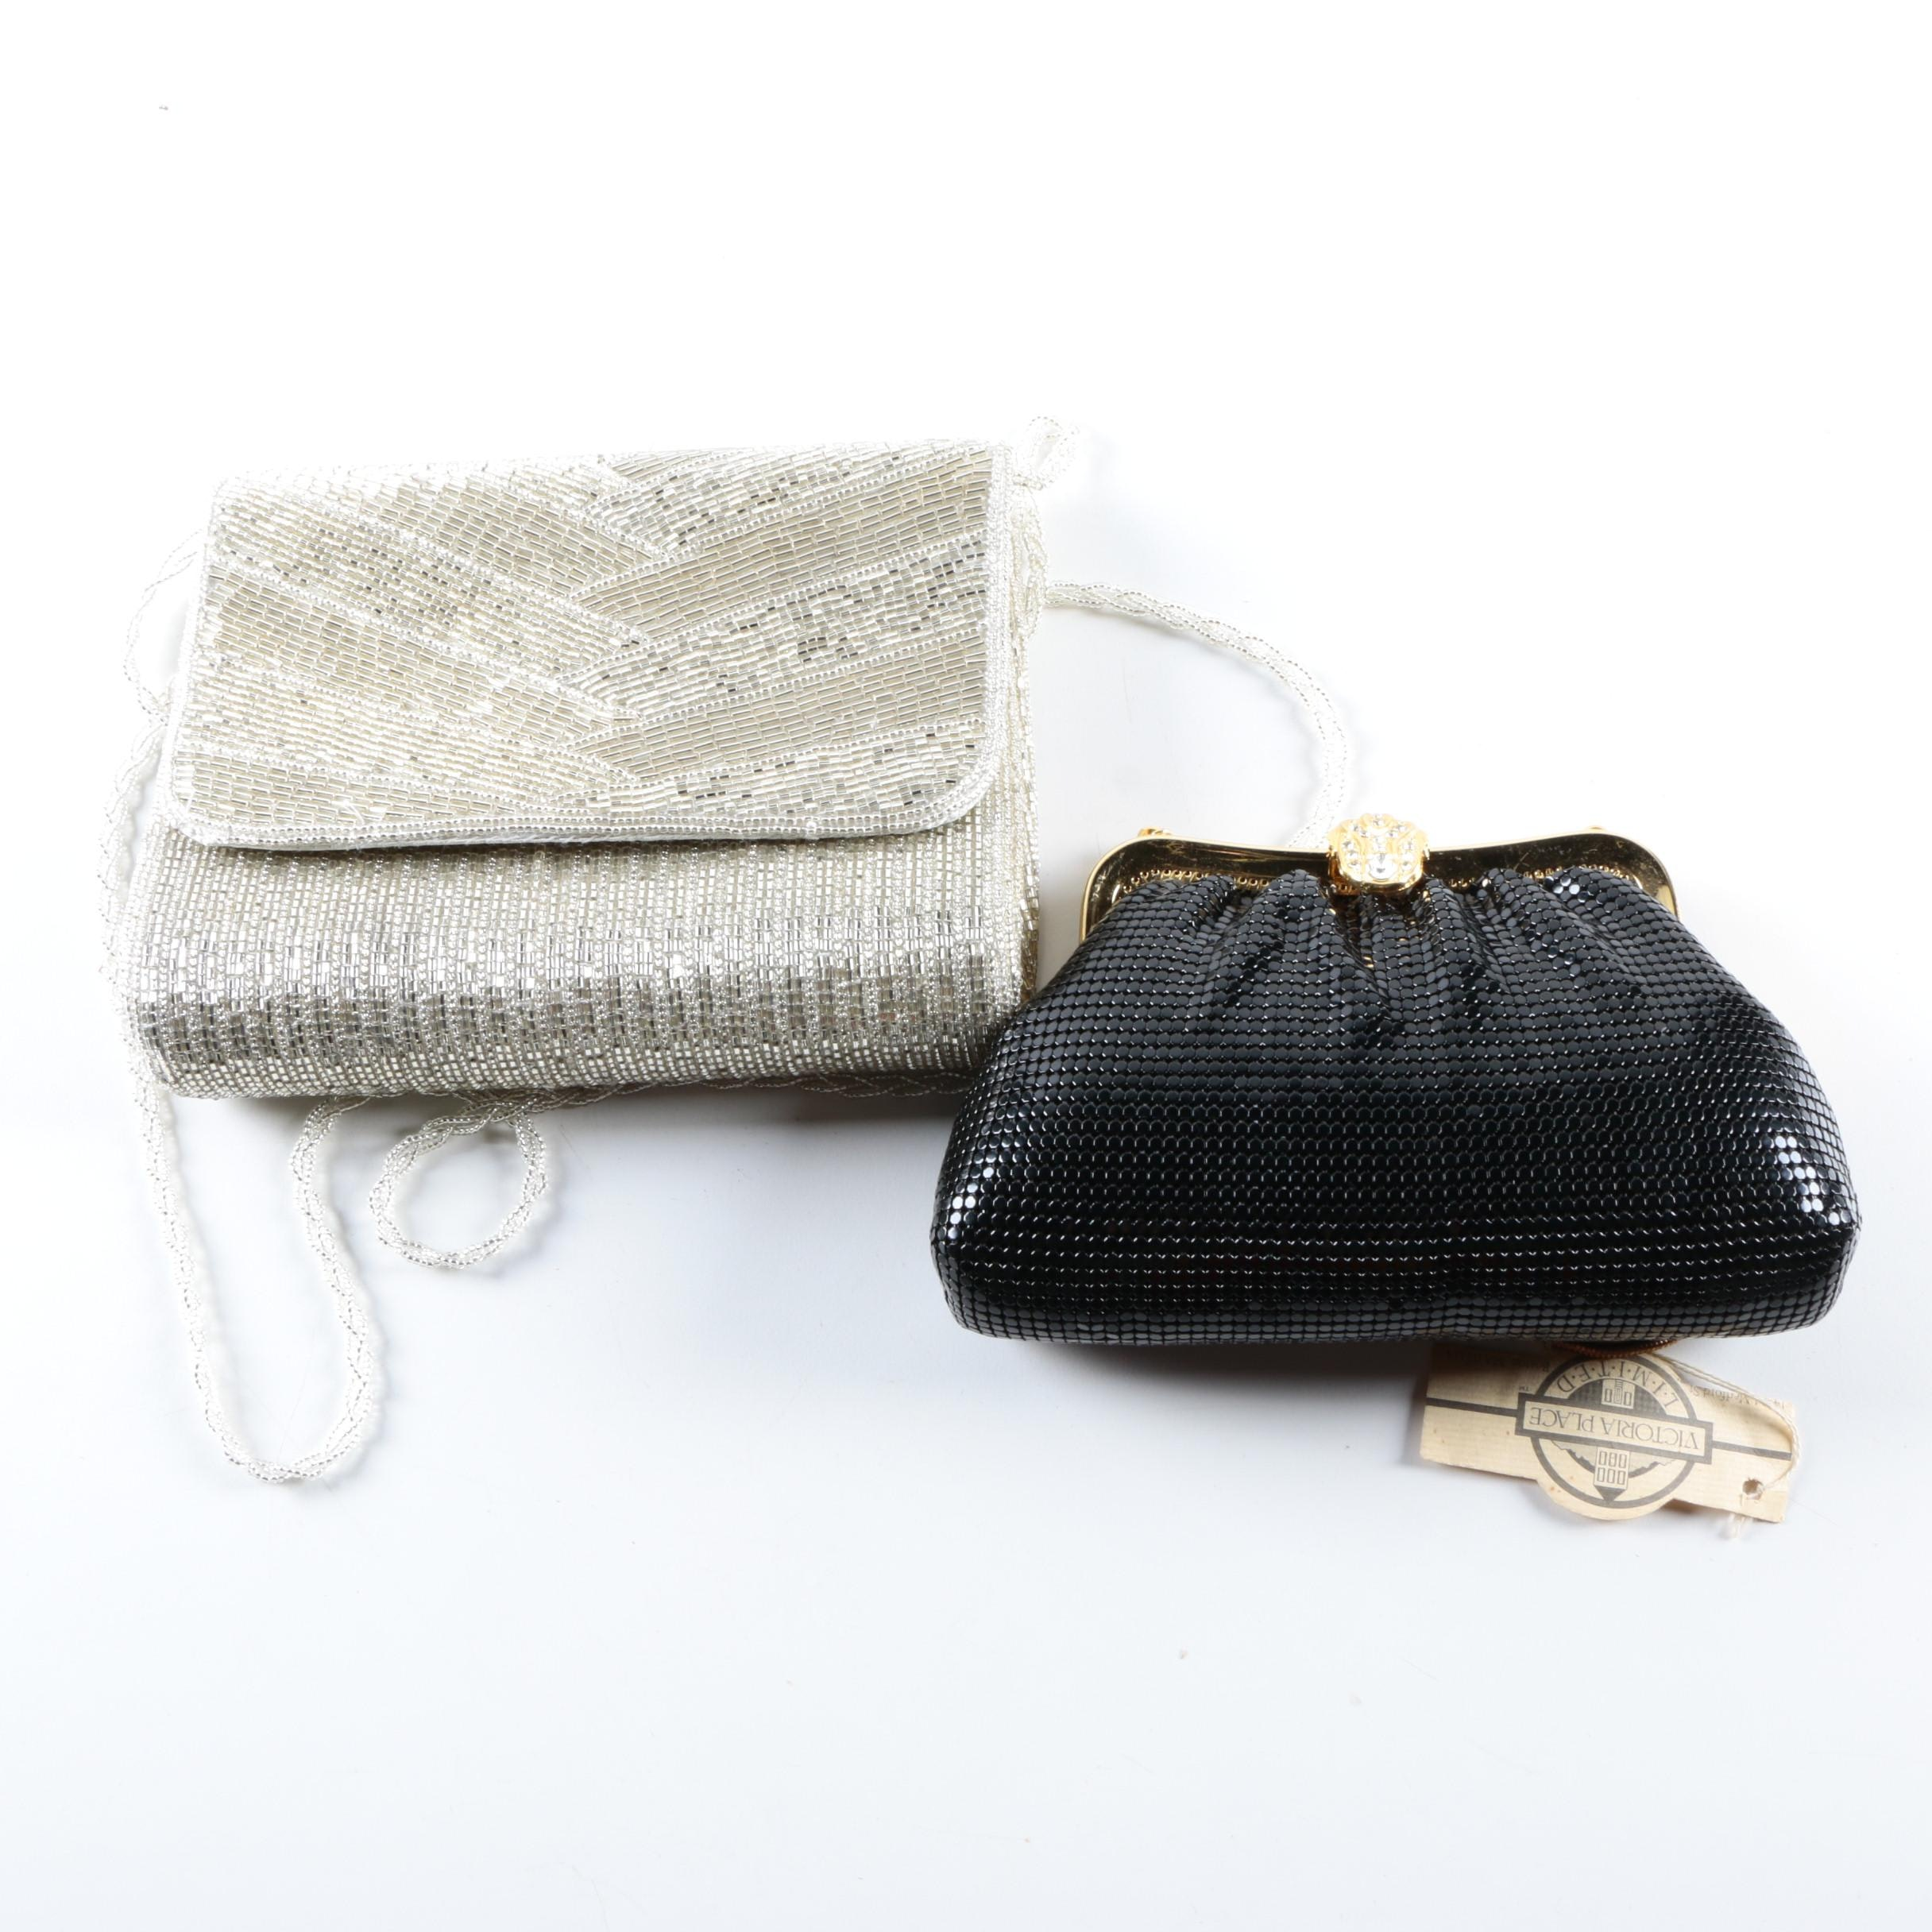 Two Vintage 1980s Clutch Bags Including La Regale and Victoria Place Limited